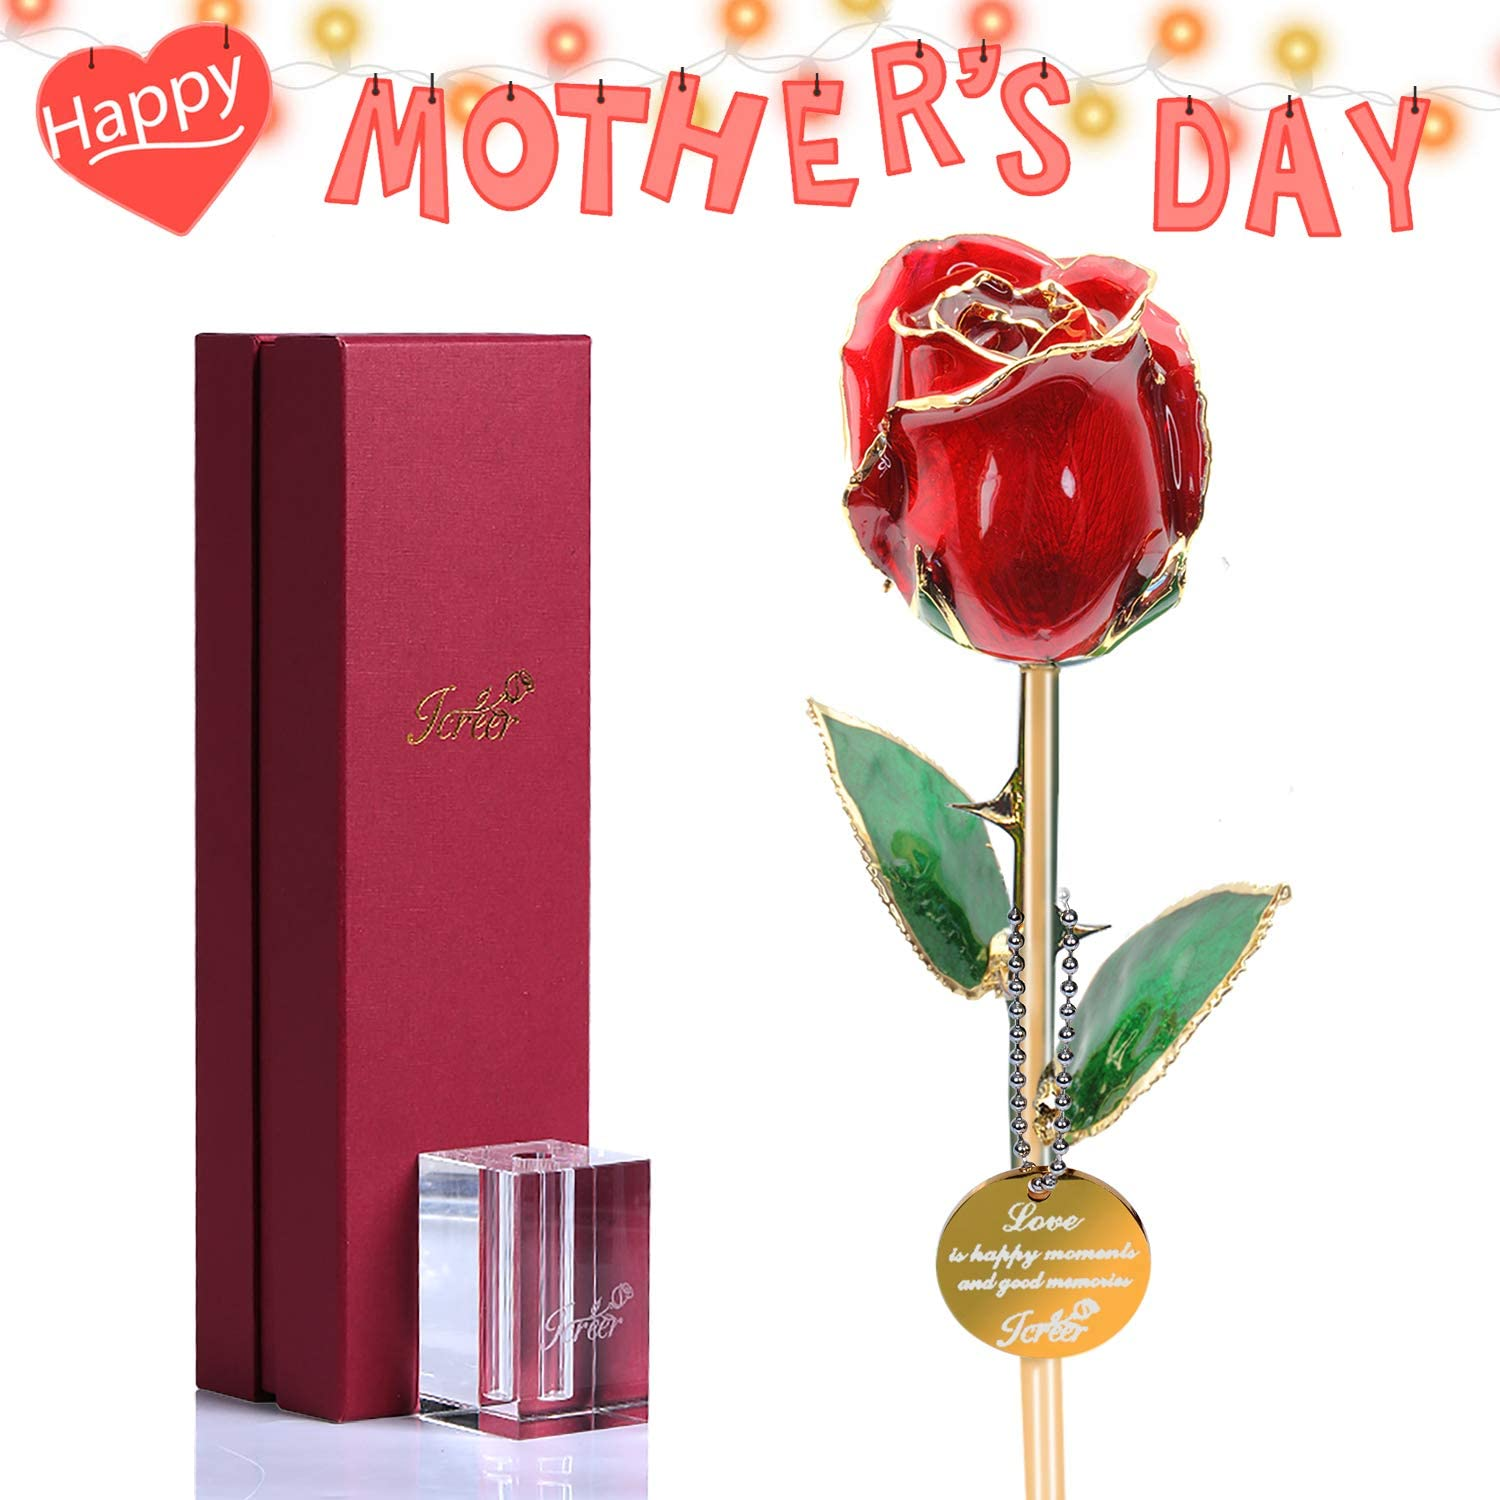 24k Gold Rose Flowers Gifts for Her Wife Girlfriend Mom,Best Gift for Valentine's Day Anniversary Birthday Mother's Day with K9 Crystal Stand (Red)